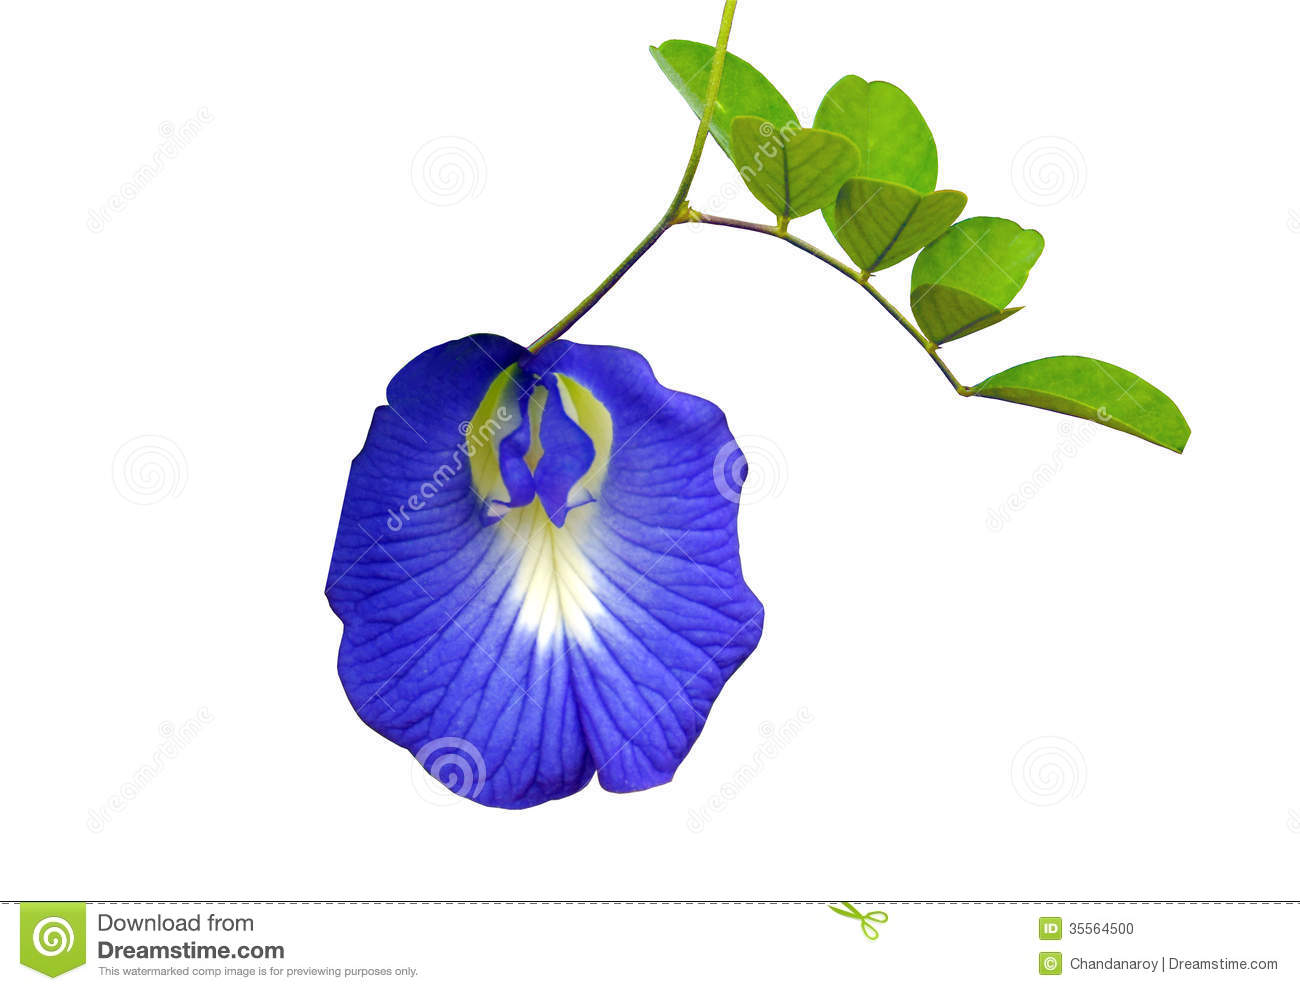 Butterfly pea clipart.